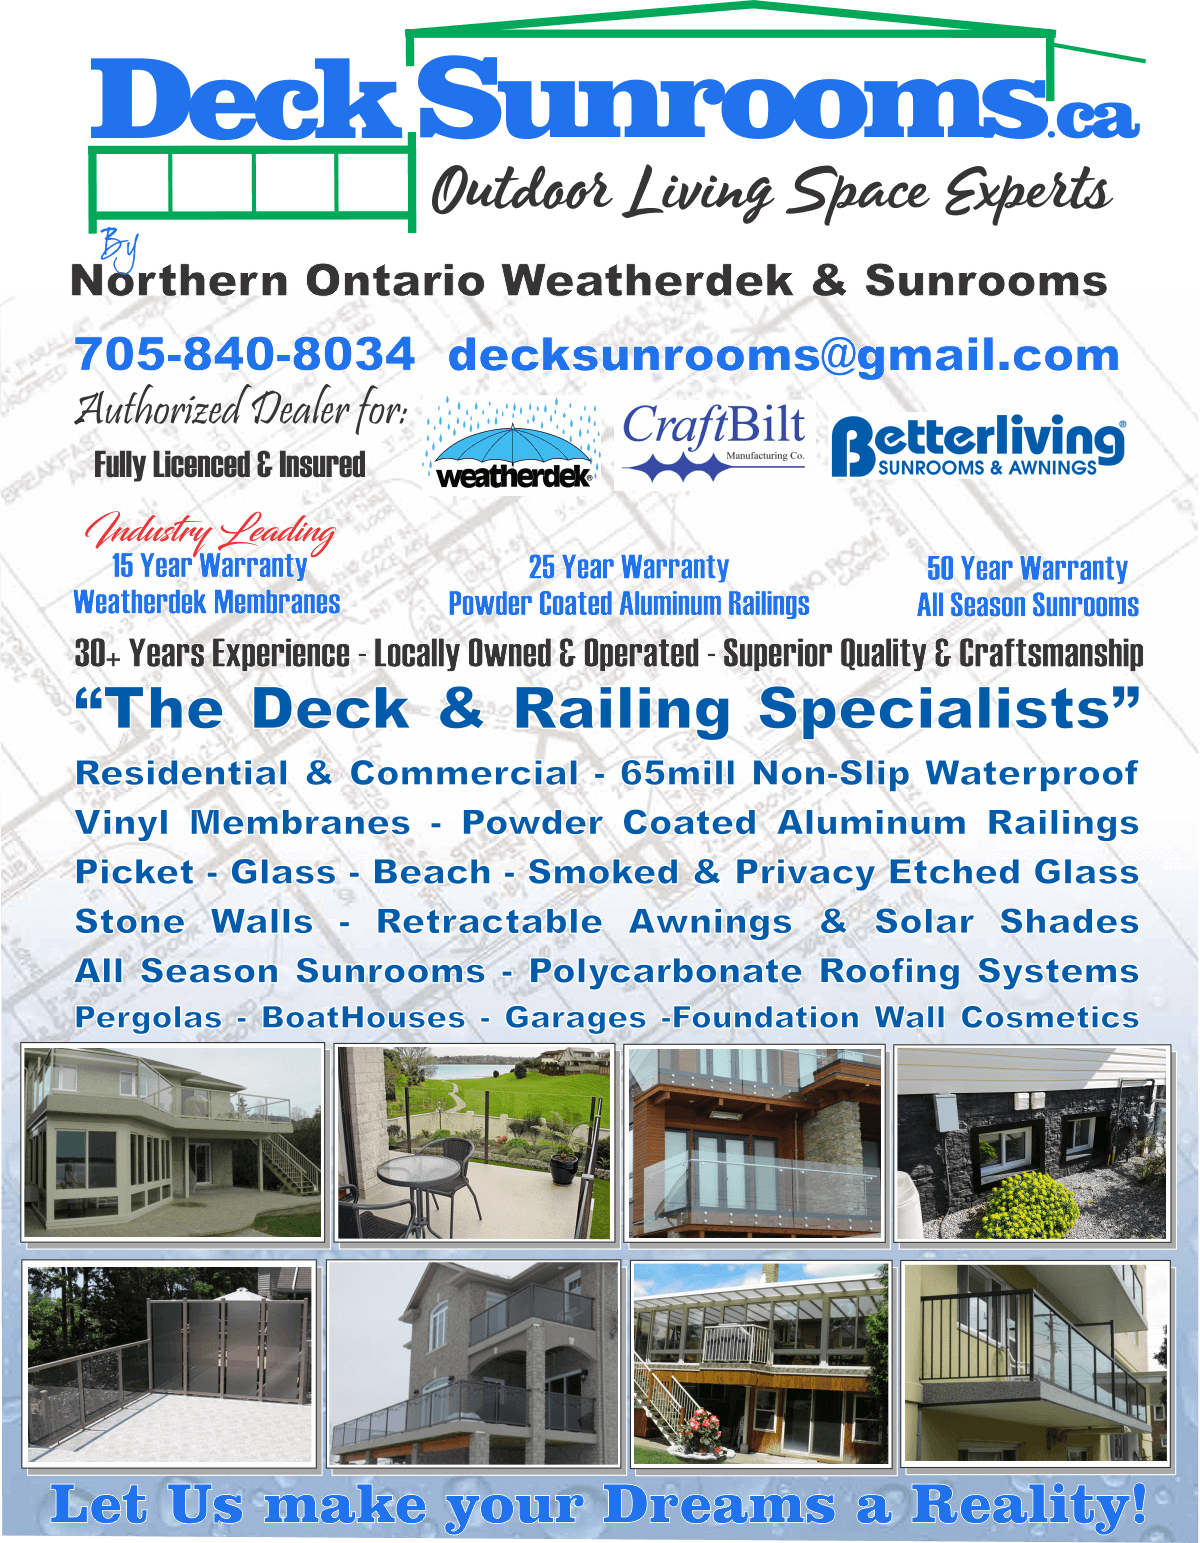 Print Design, Print Collateral by Effective Marketing, www..decksunrooms.ca flyer.